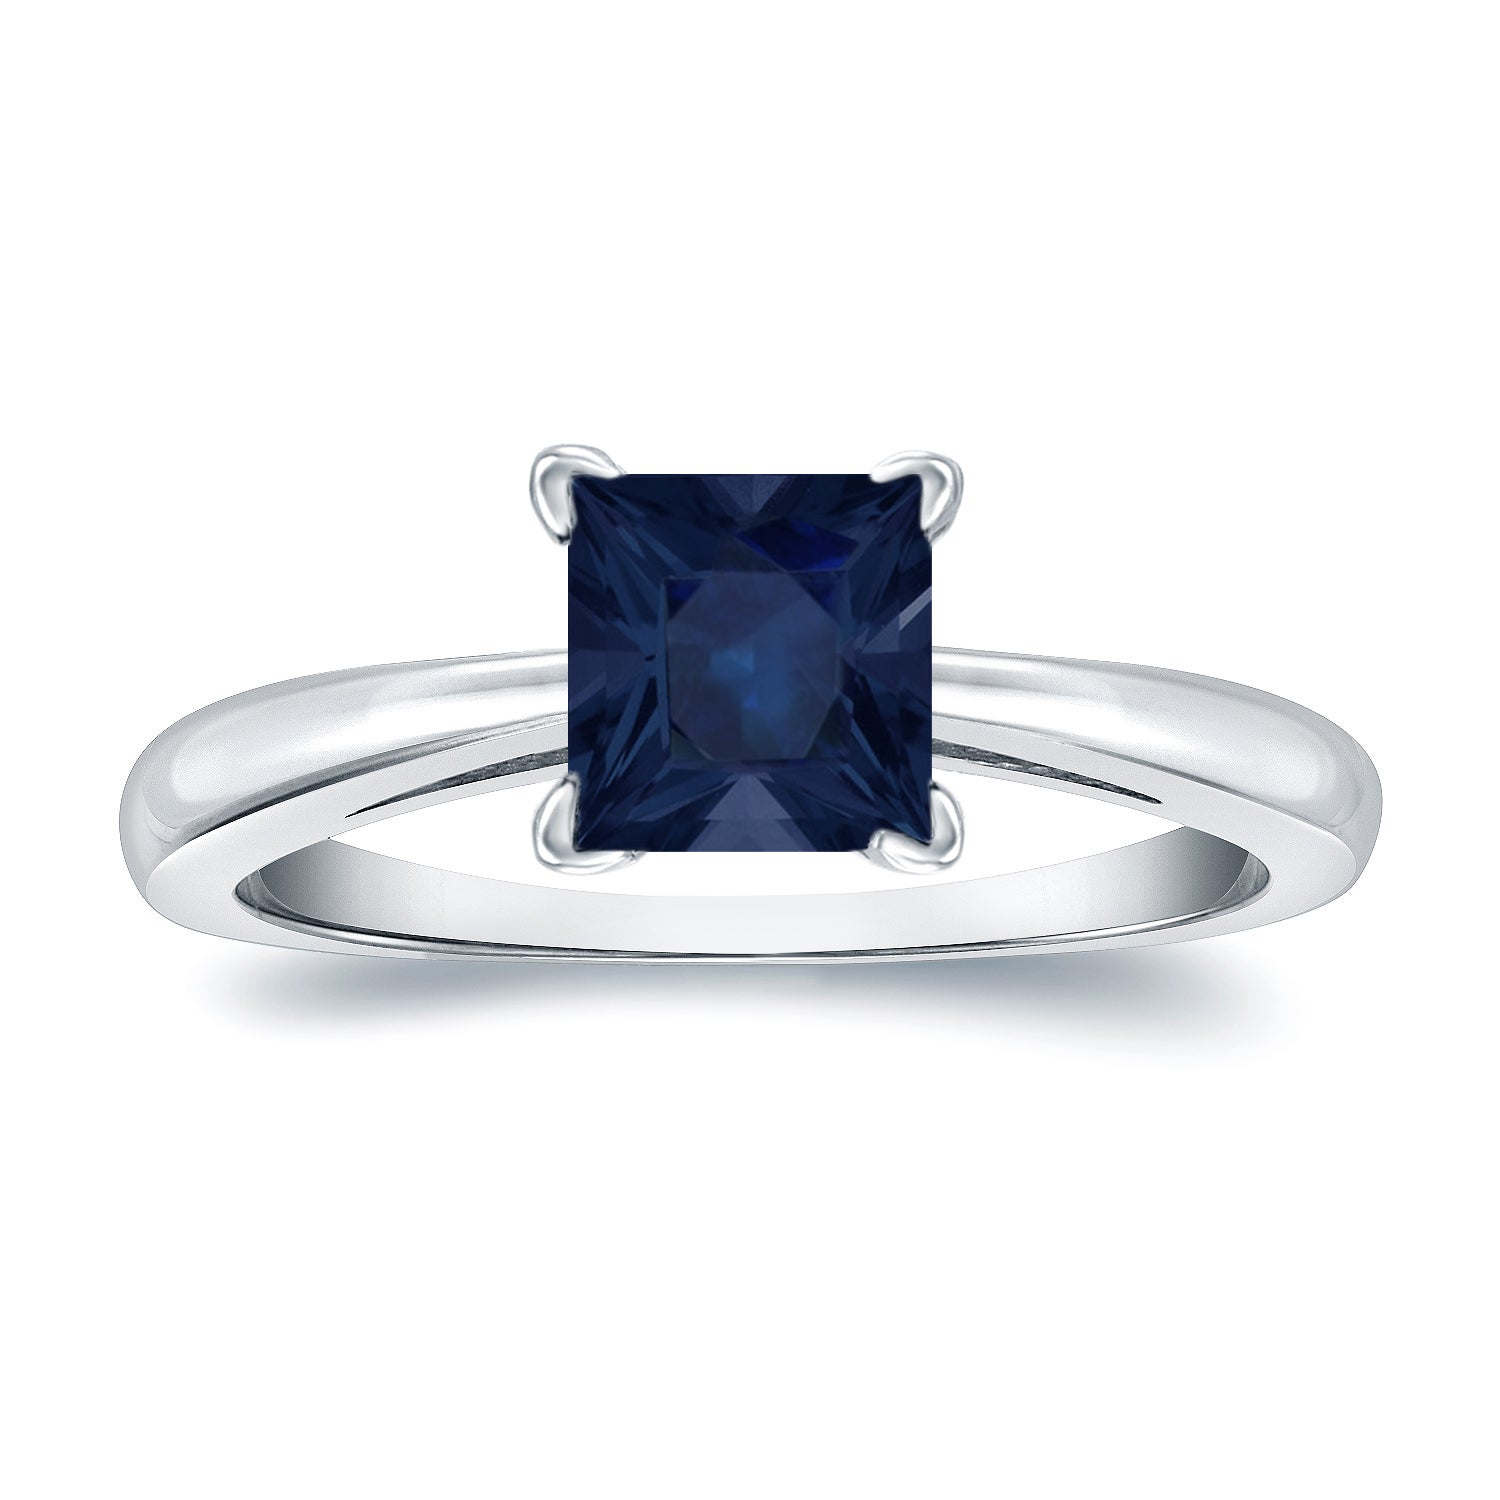 ring american engagement boston sapphire sourced responsibly solitaire alternative jewelers products jewelry image montana